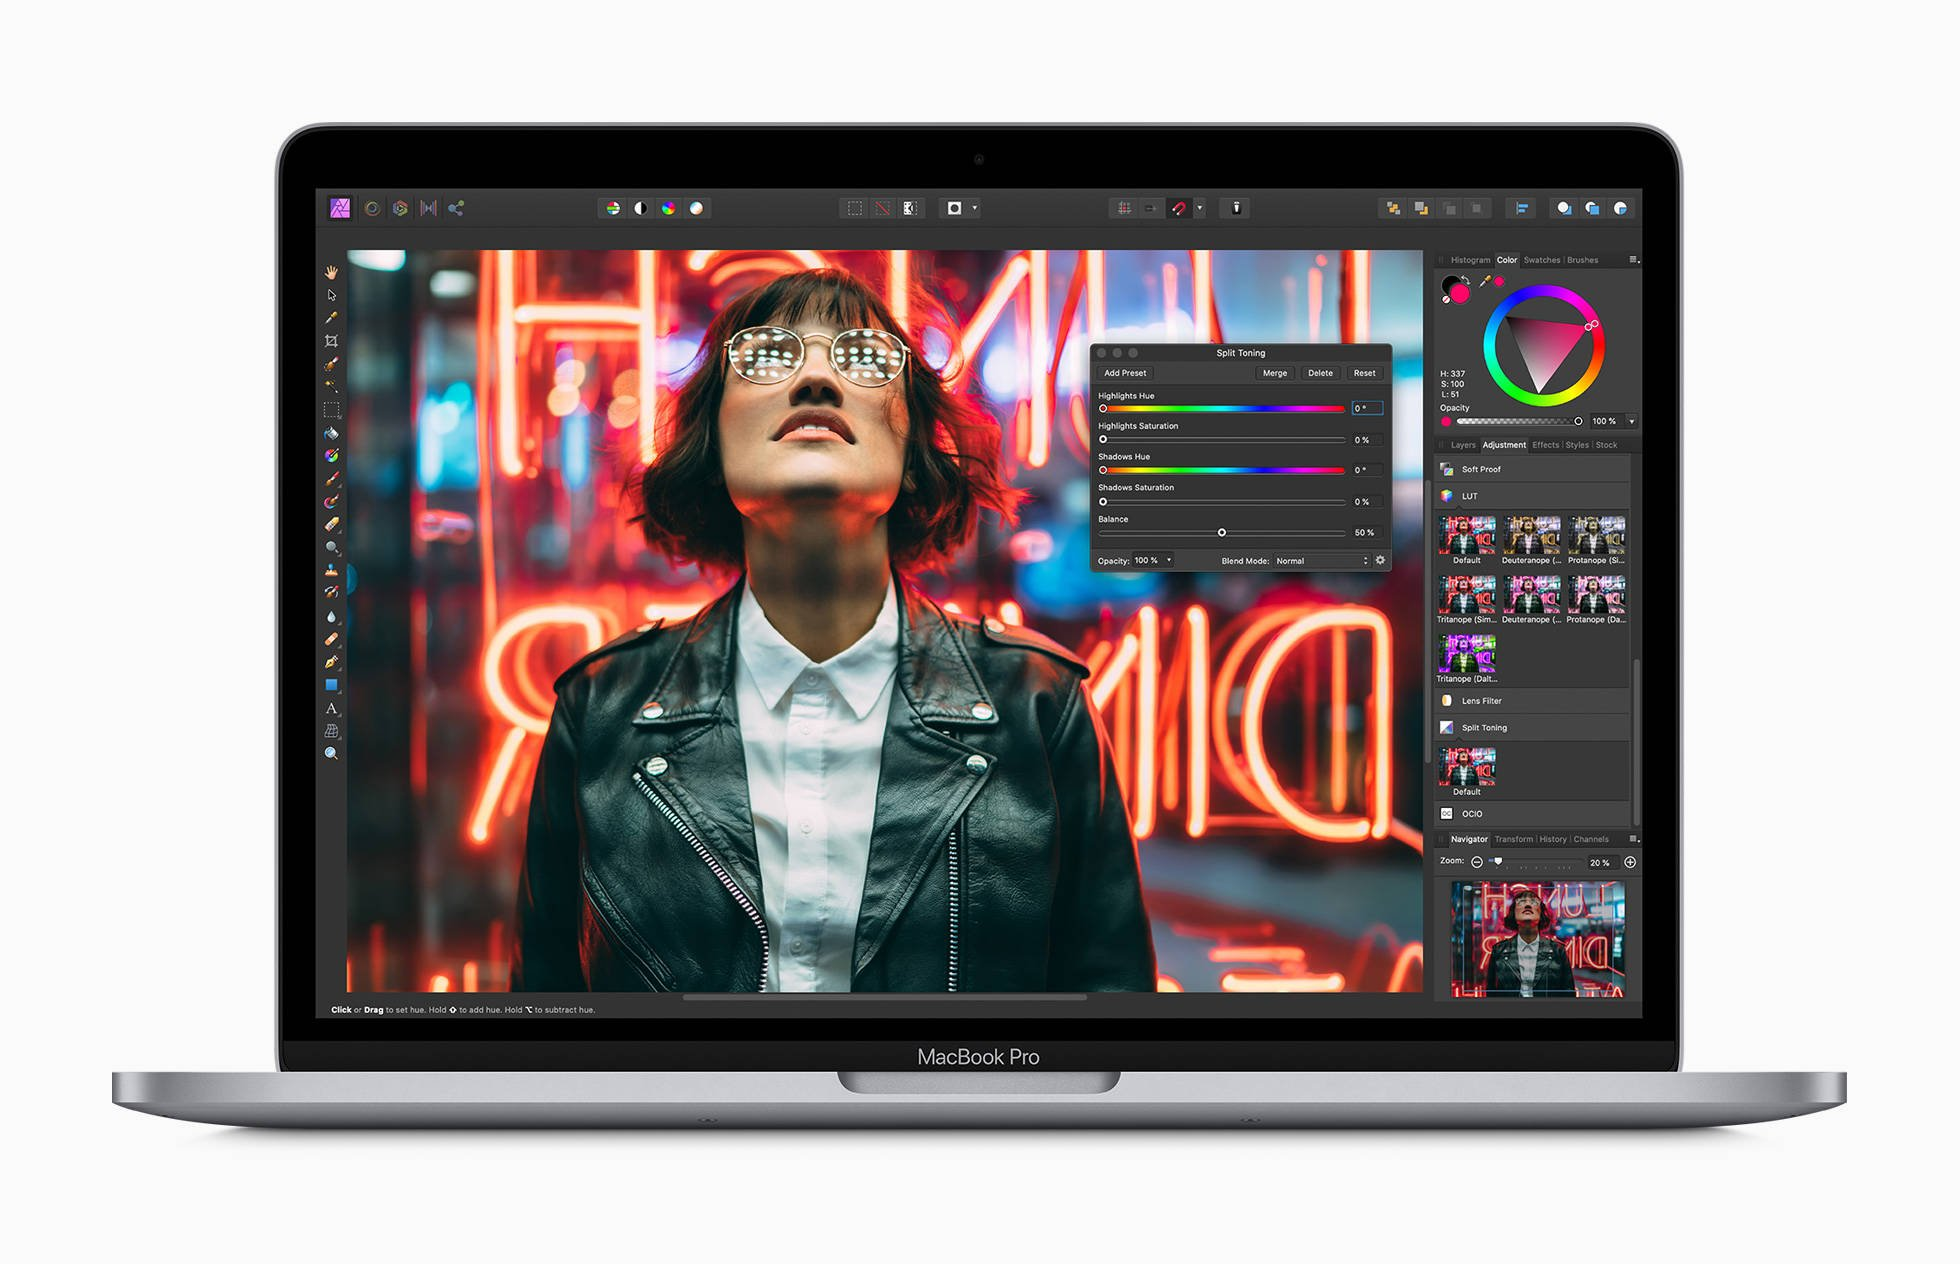 Apple launches new 13-inch MacBook Pro: Price, features and more